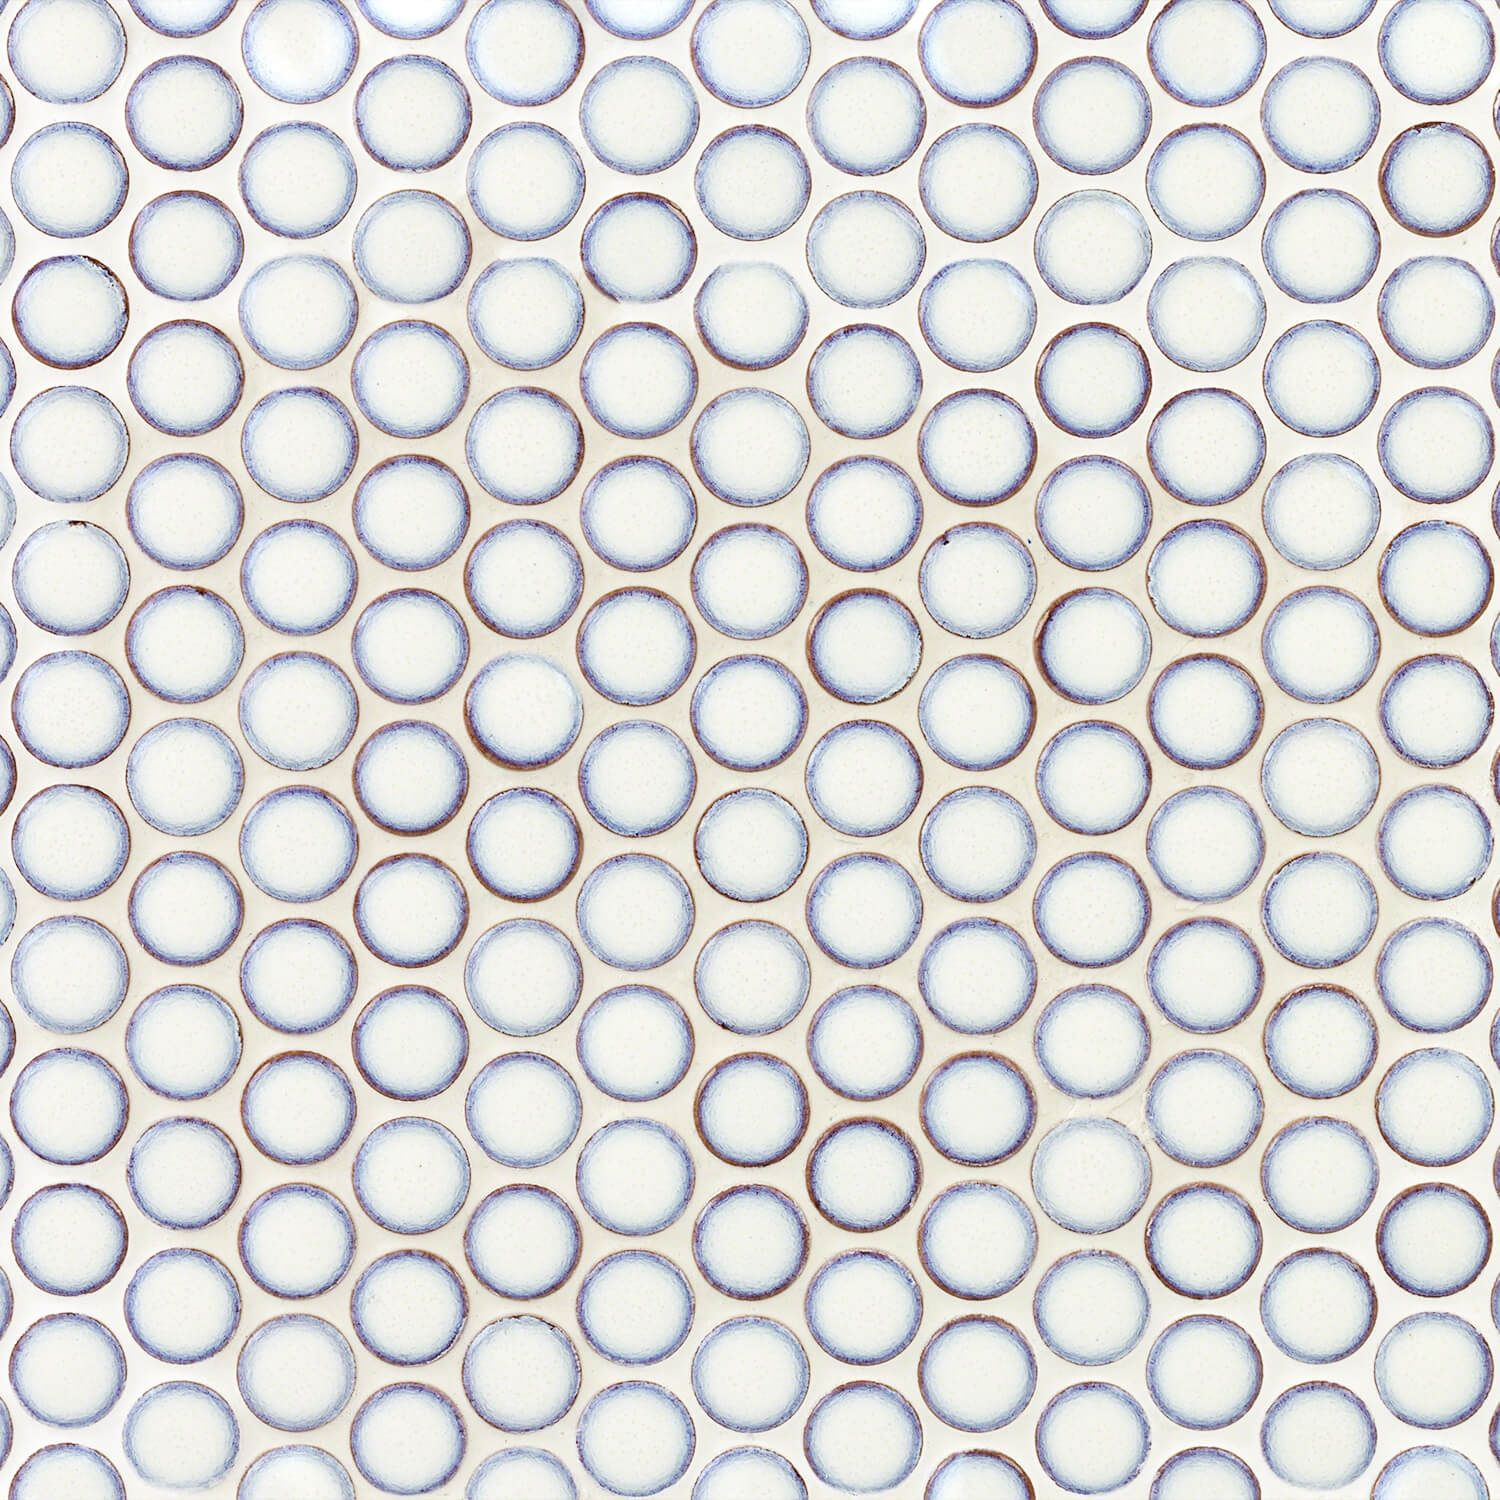 Eden Winter White Penny Round Polished Rimmed Ceramic Tile